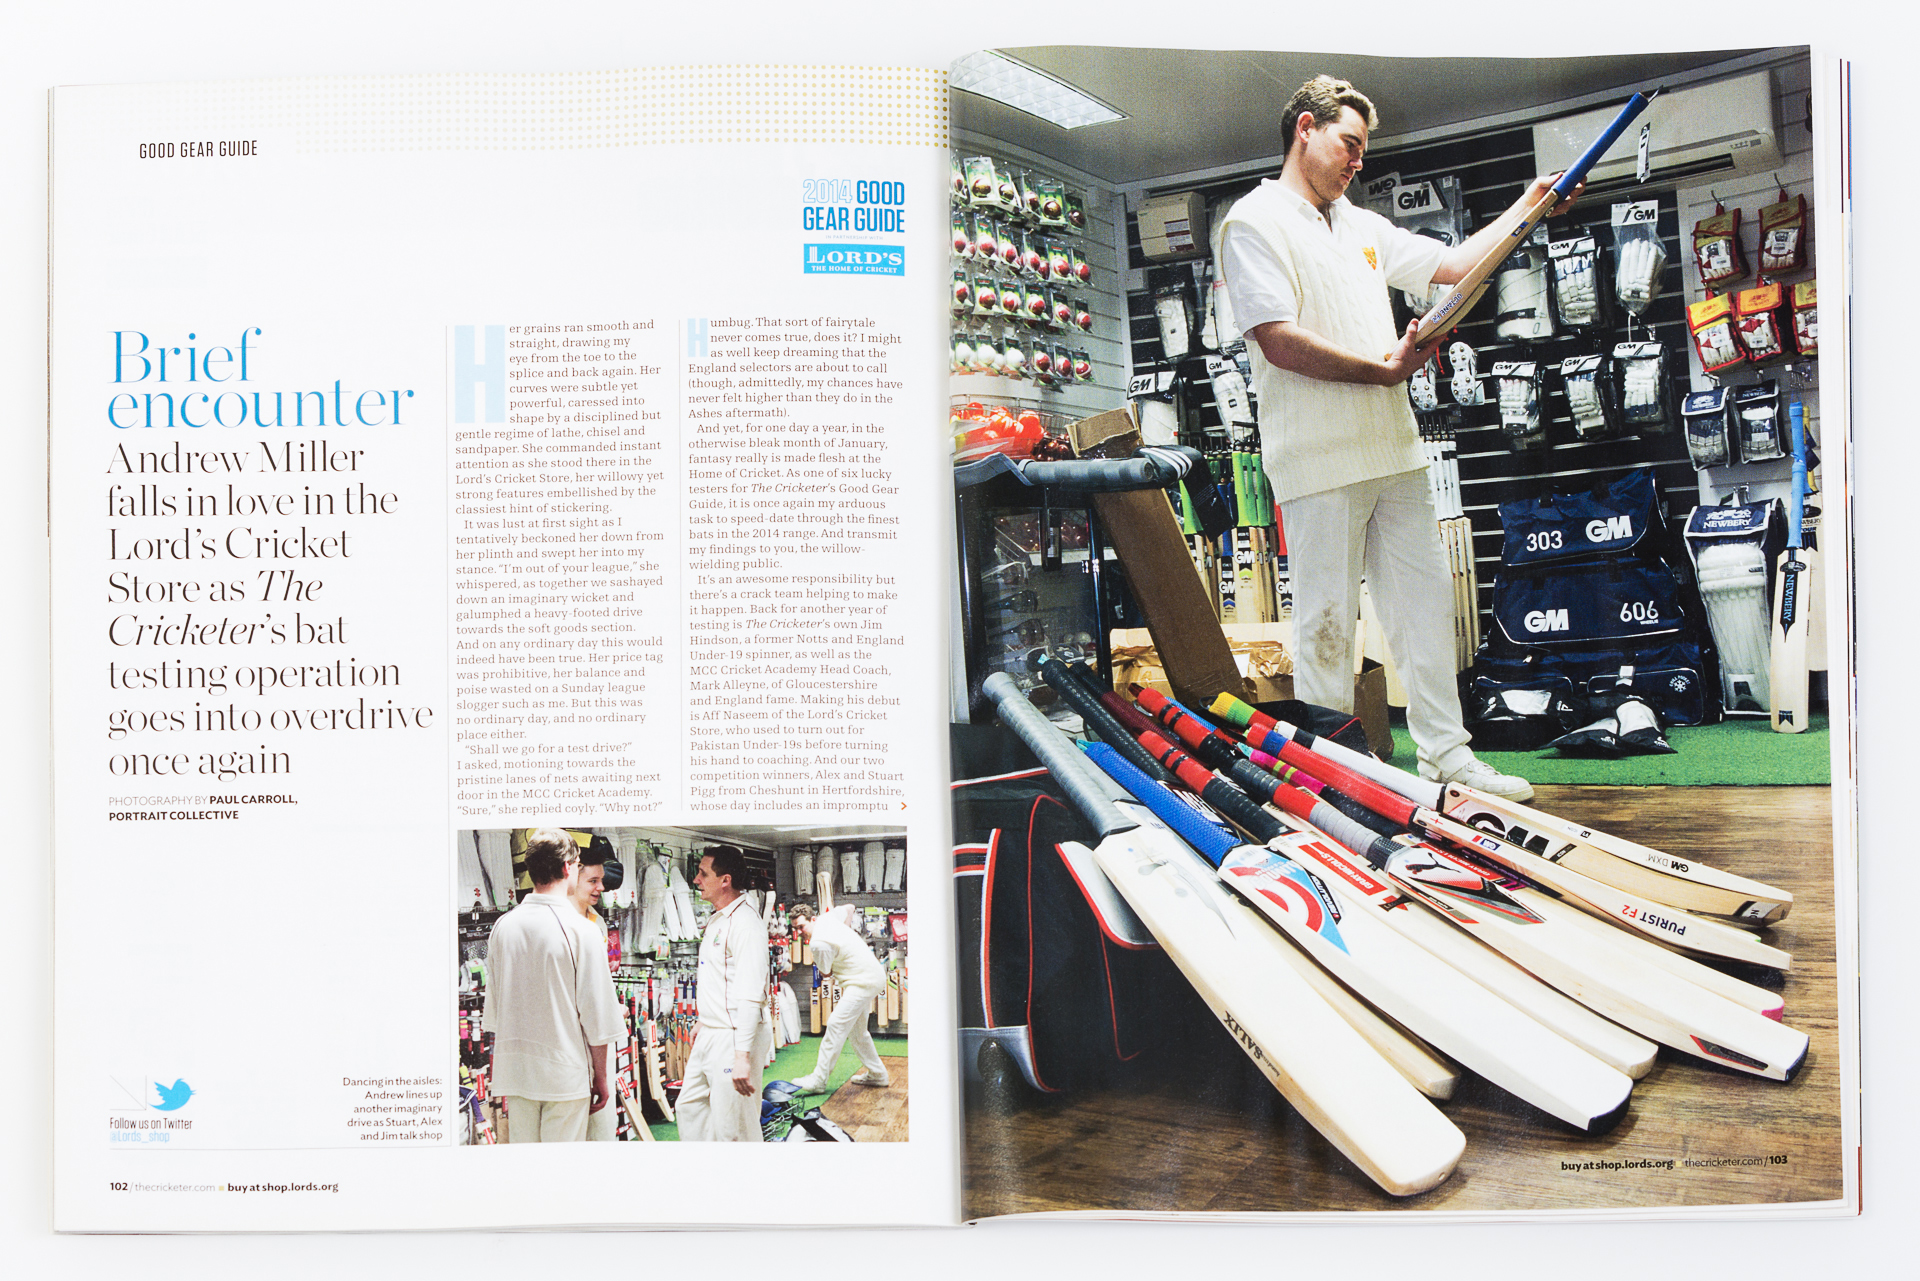 The Cricketer Magazine Good Gear Guide 2014. All photography courtesy Paul Carroll Photography / Portrait Collective.